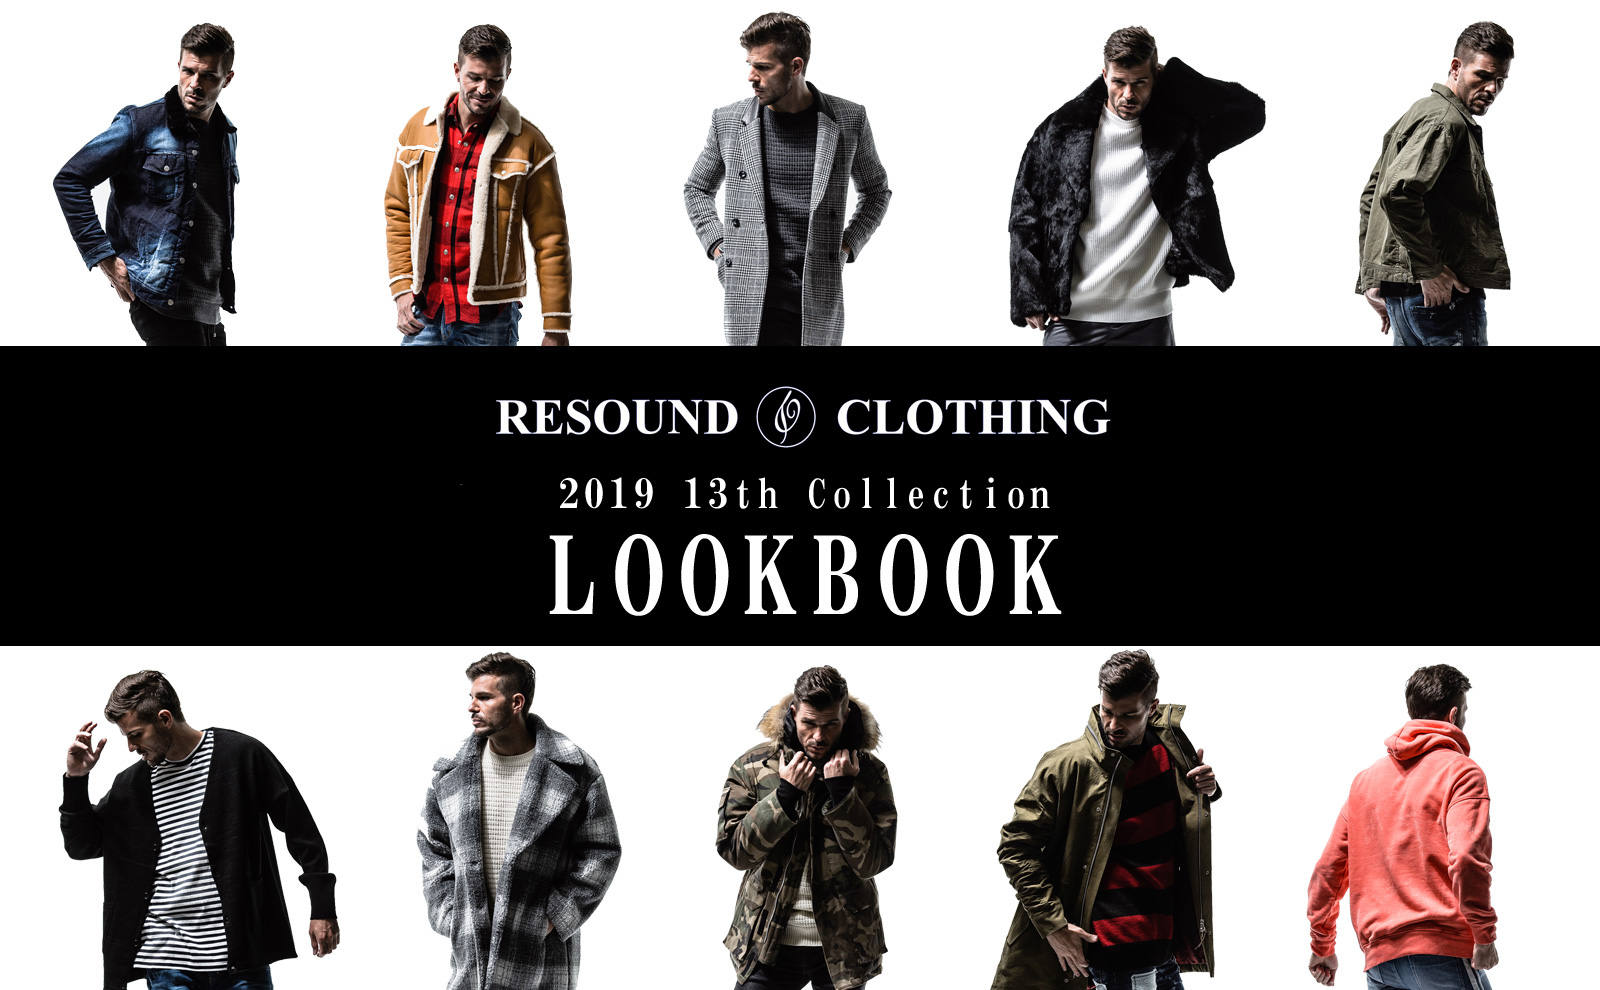 2019 13th Collection